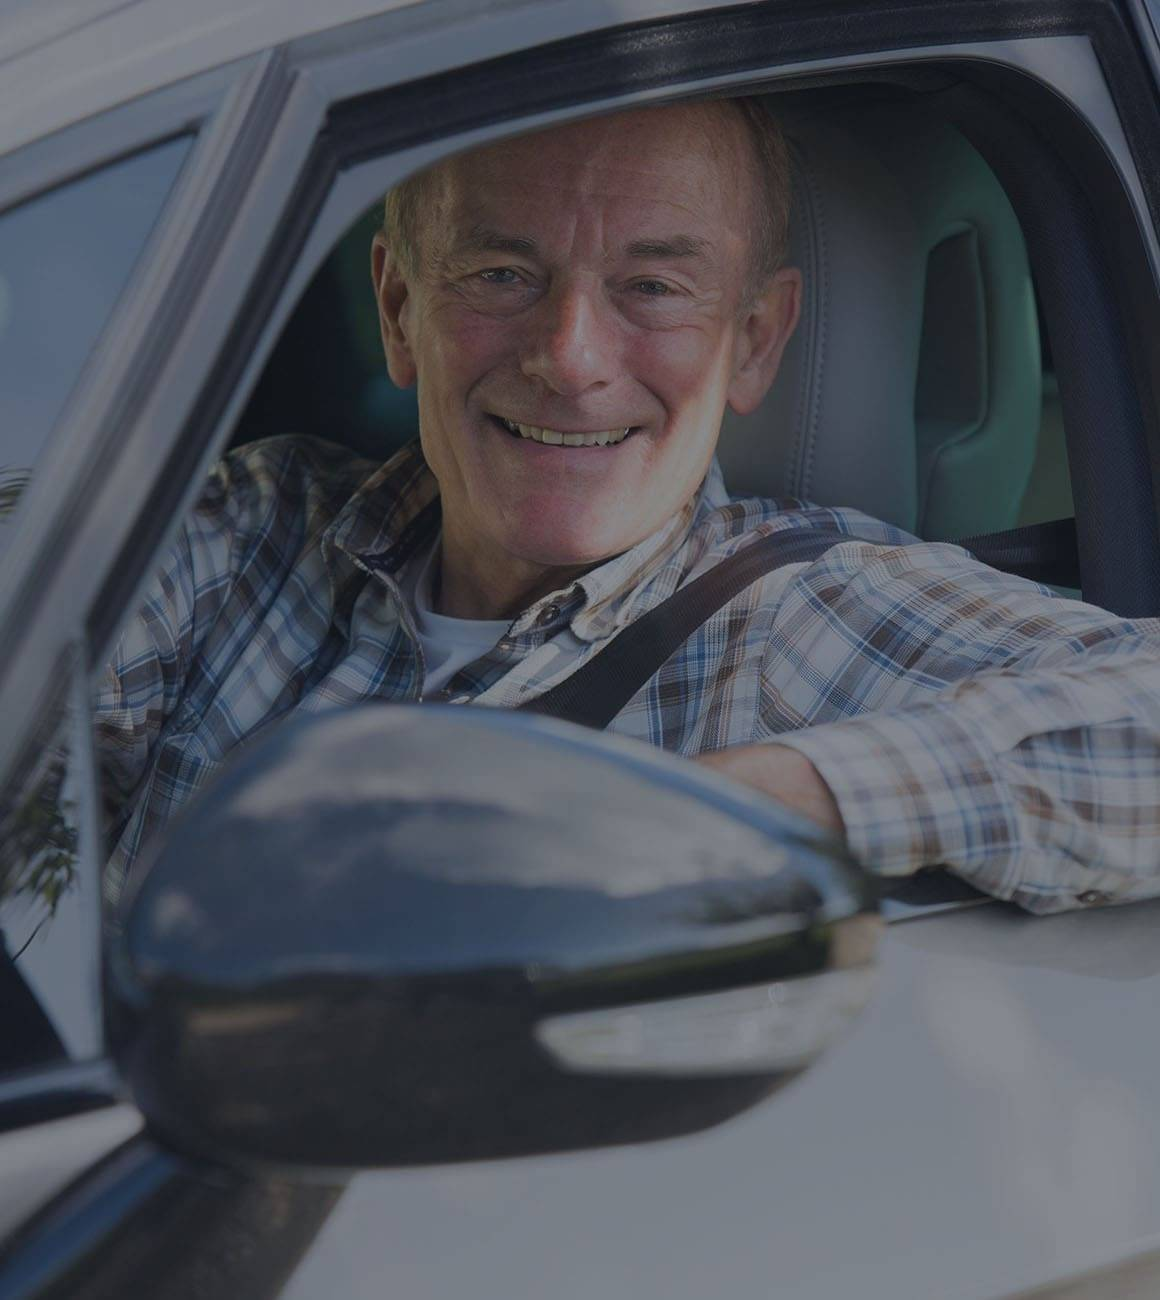 Get the best Geoffrey Insurance car insurance prices today